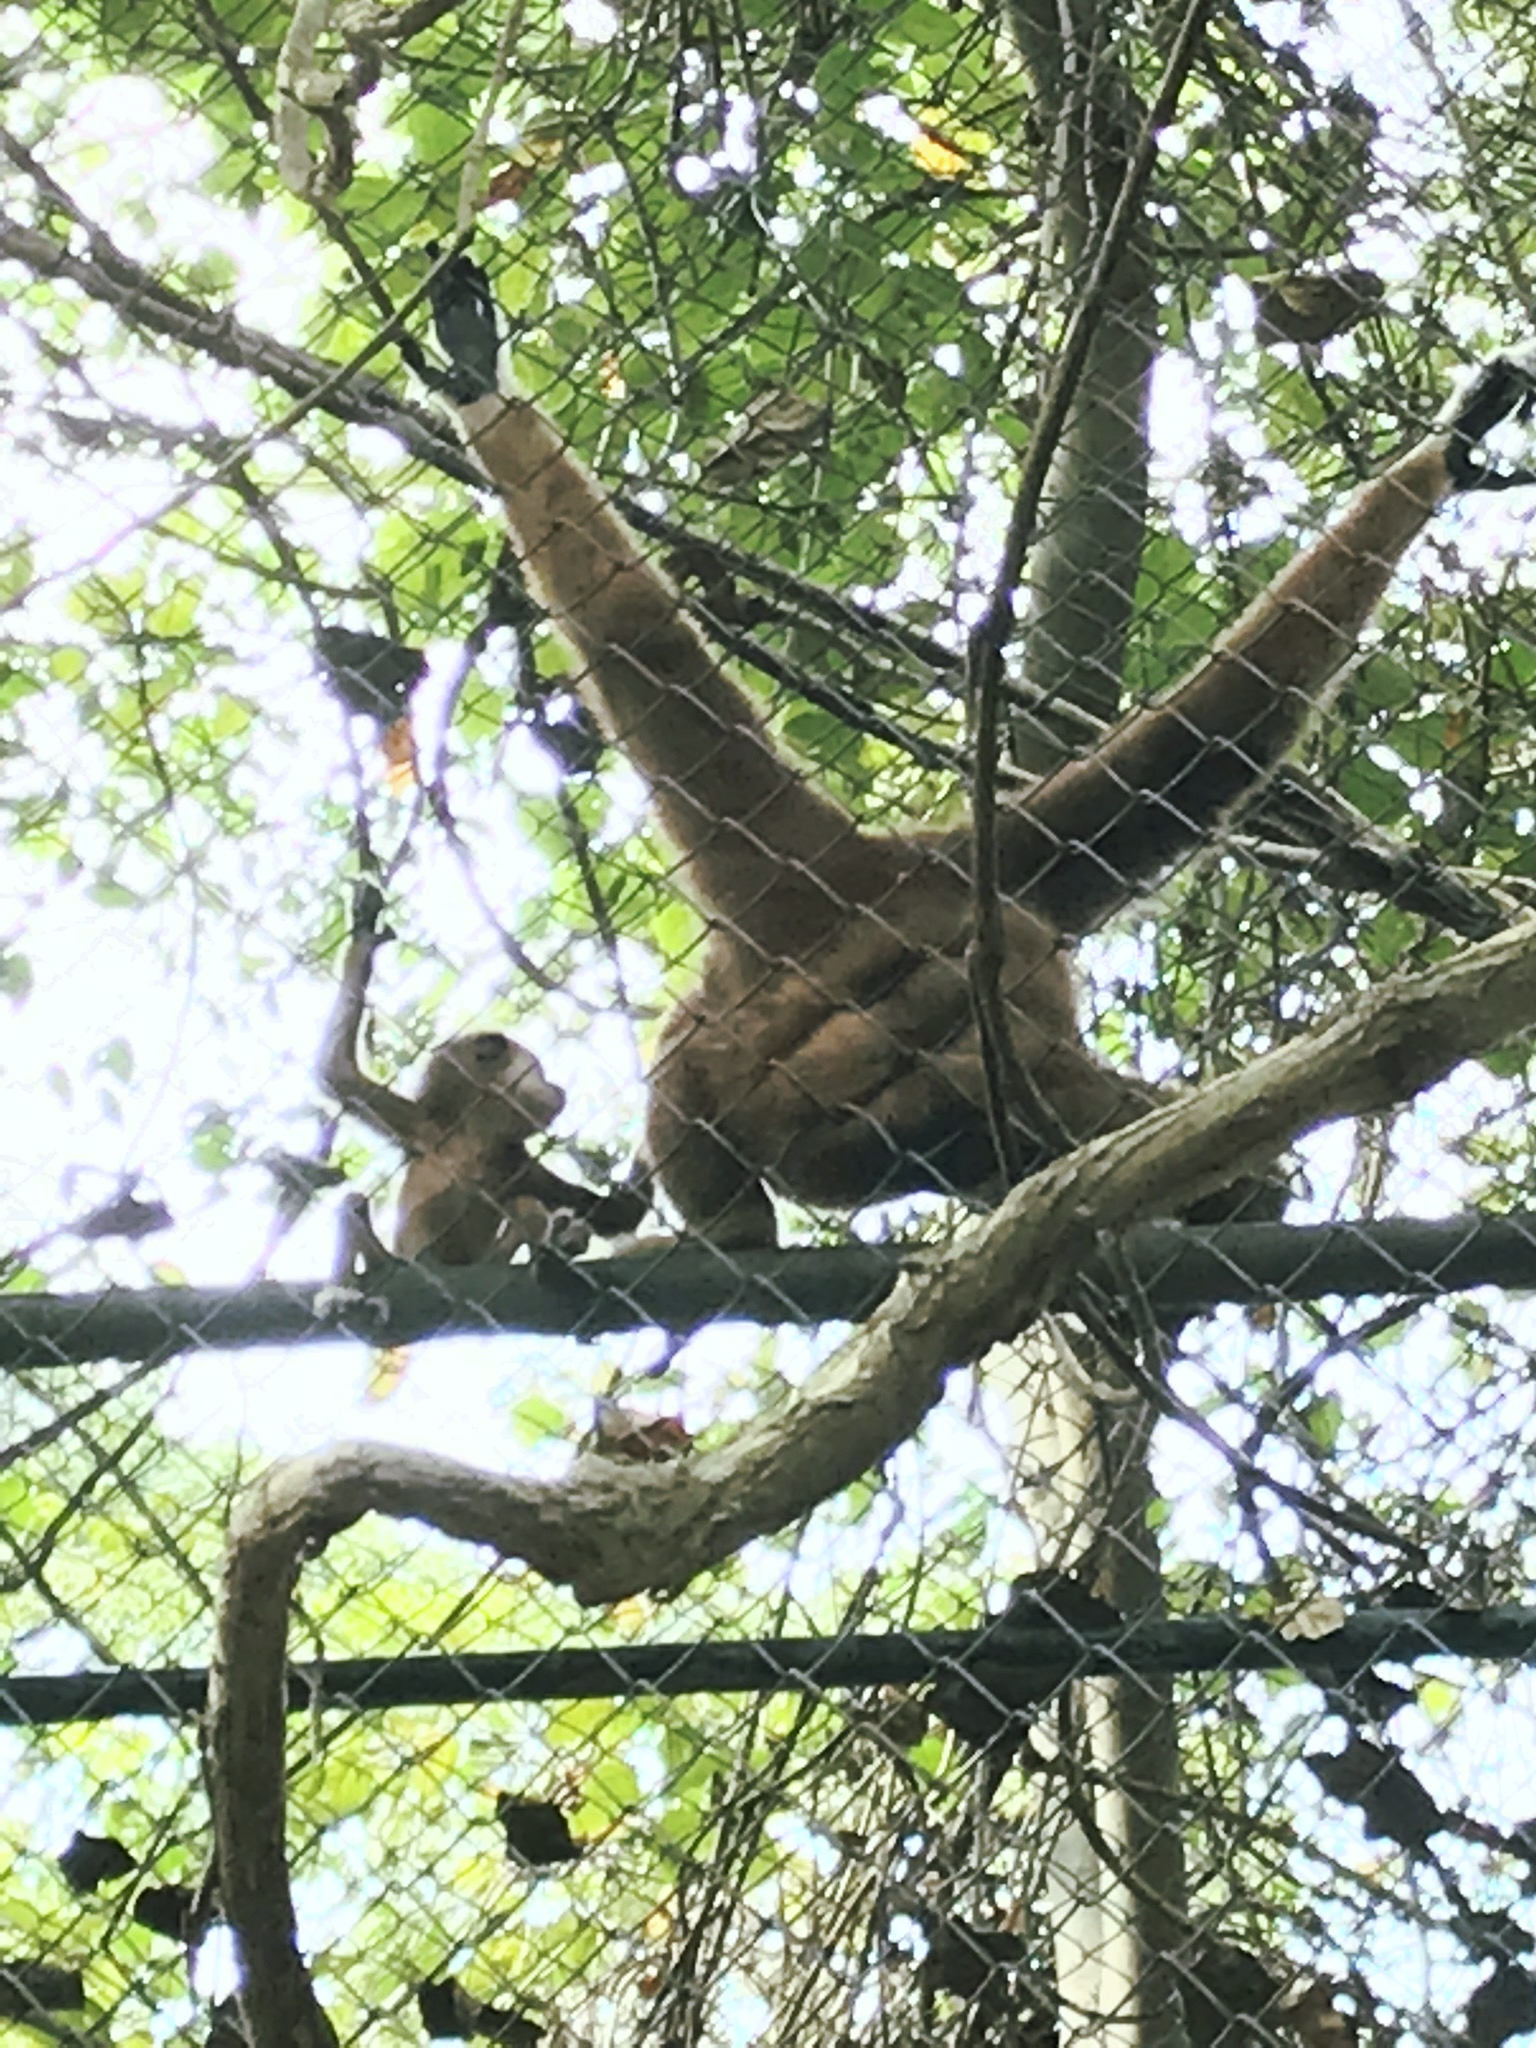 Momma gibbon and her baby at WFFT